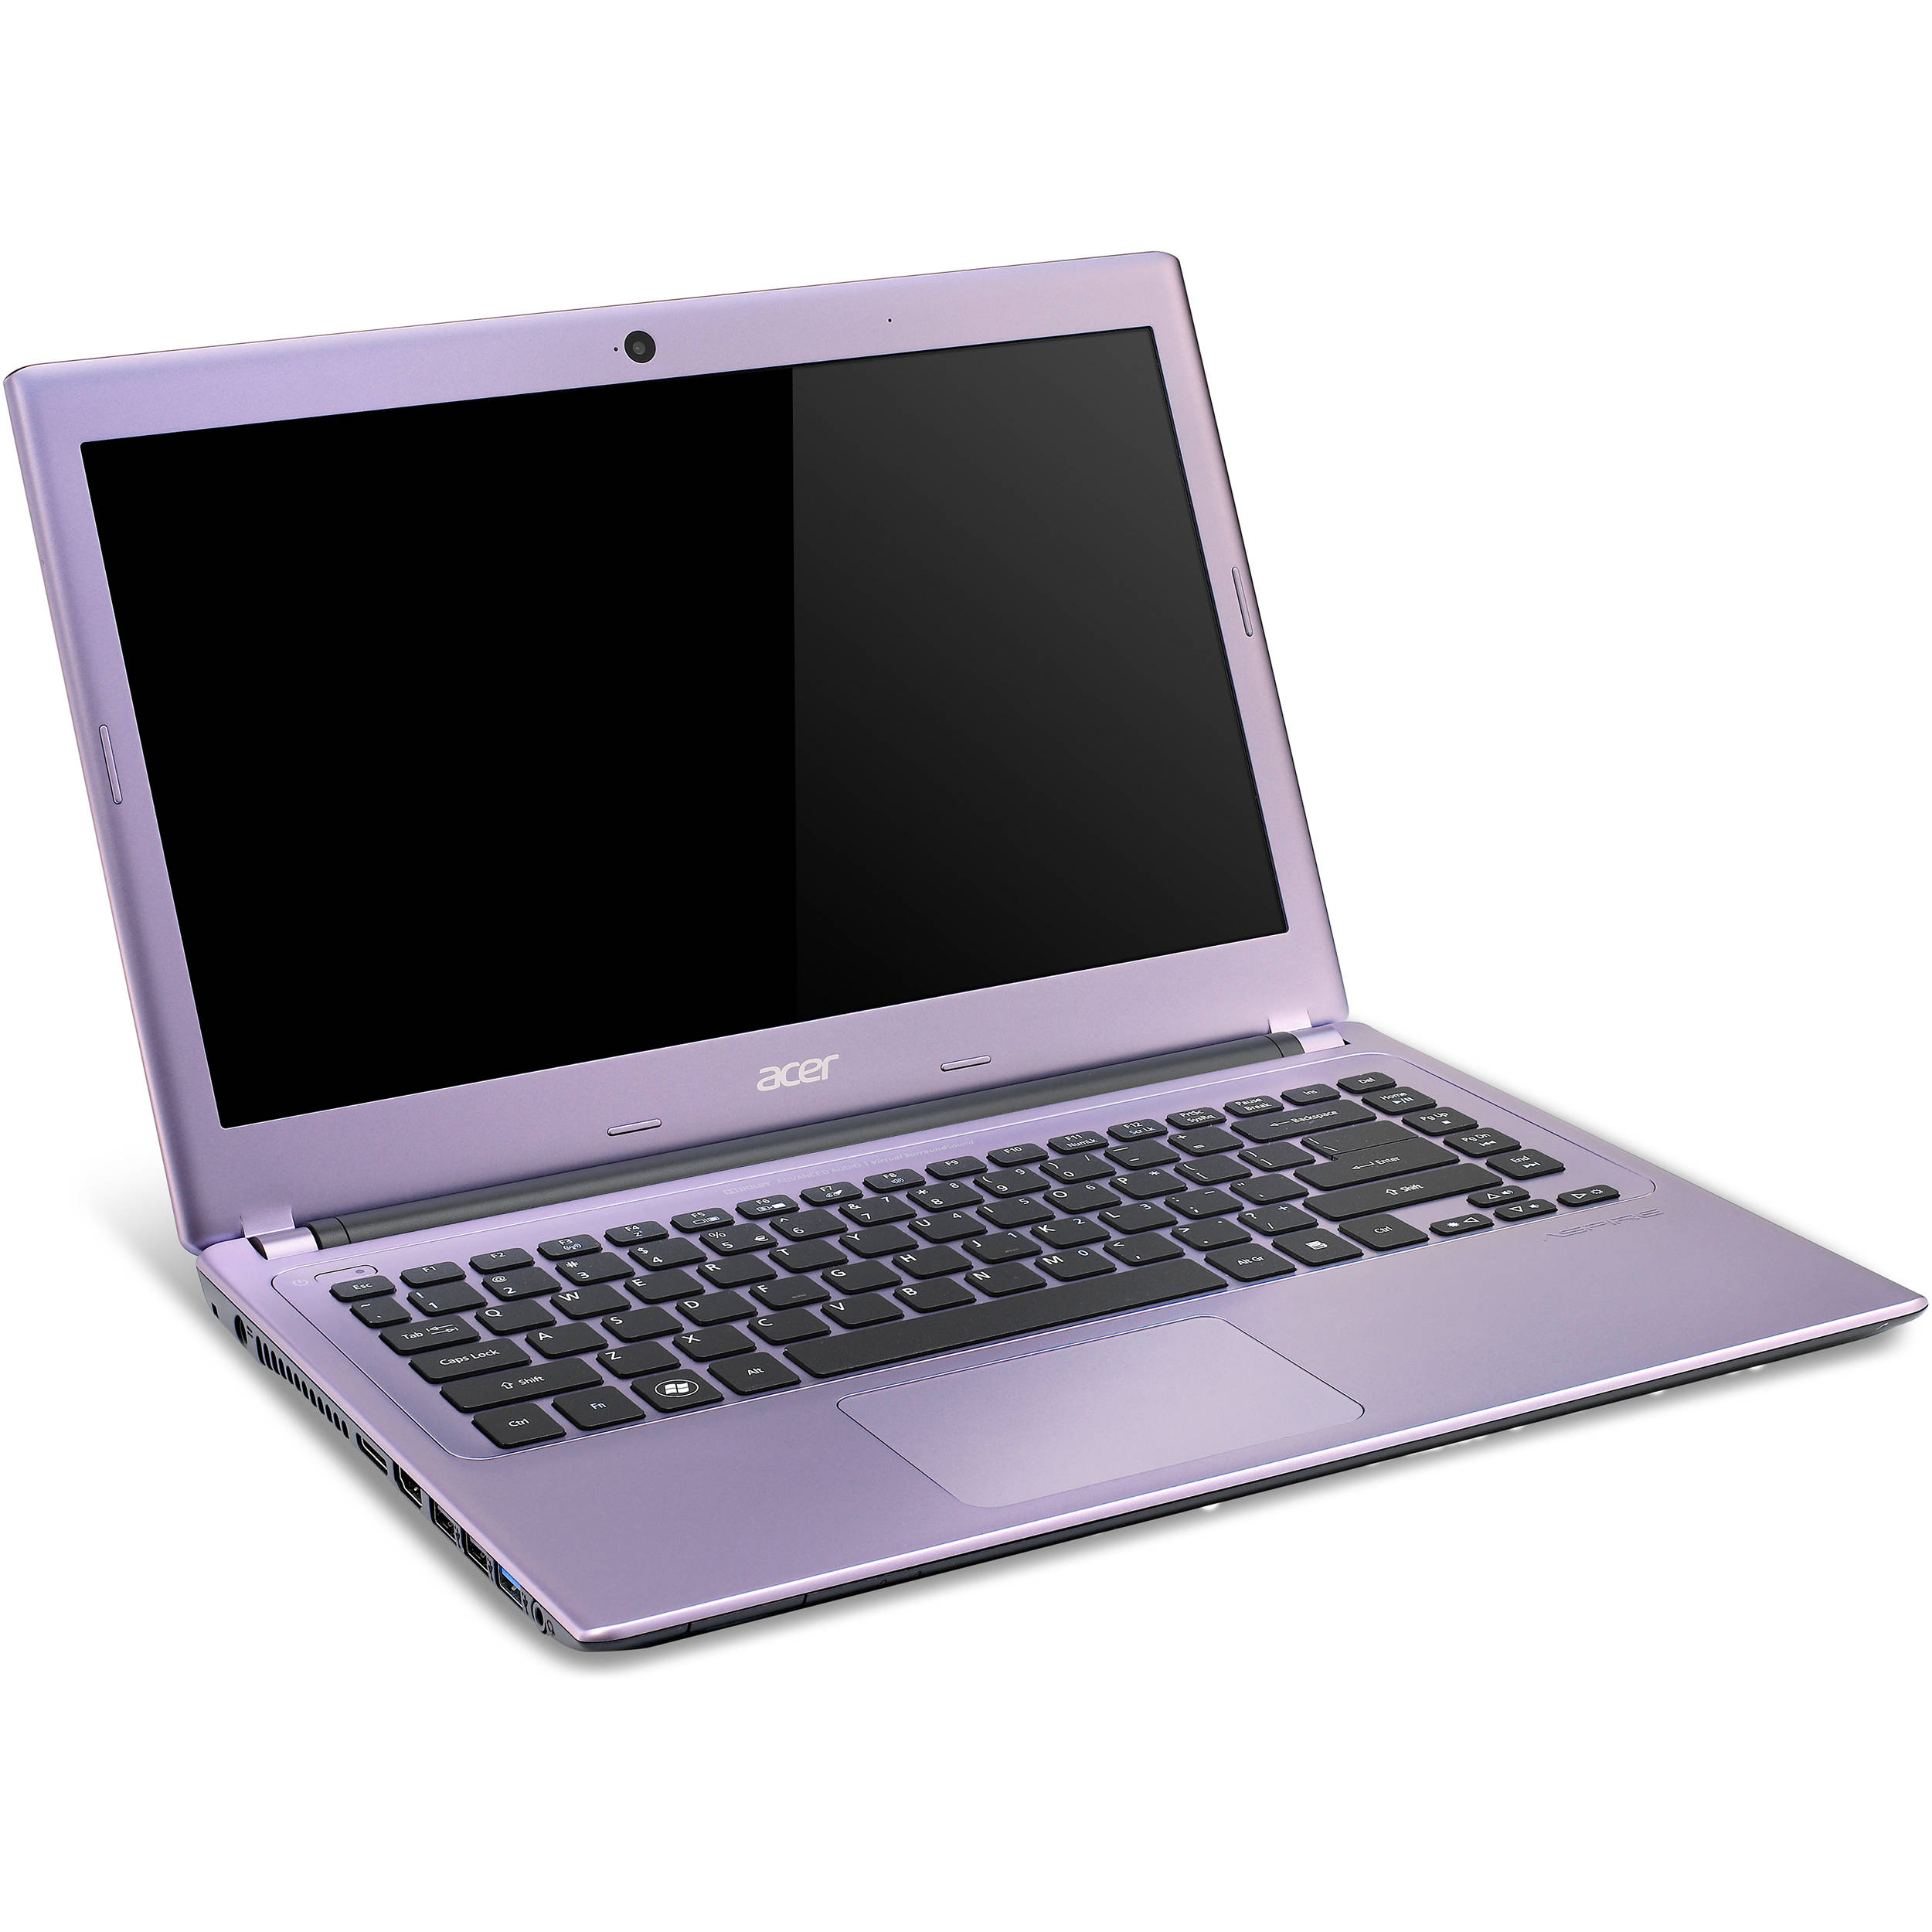 Acer Aspire V5-472G Intel WLAN Drivers for Windows